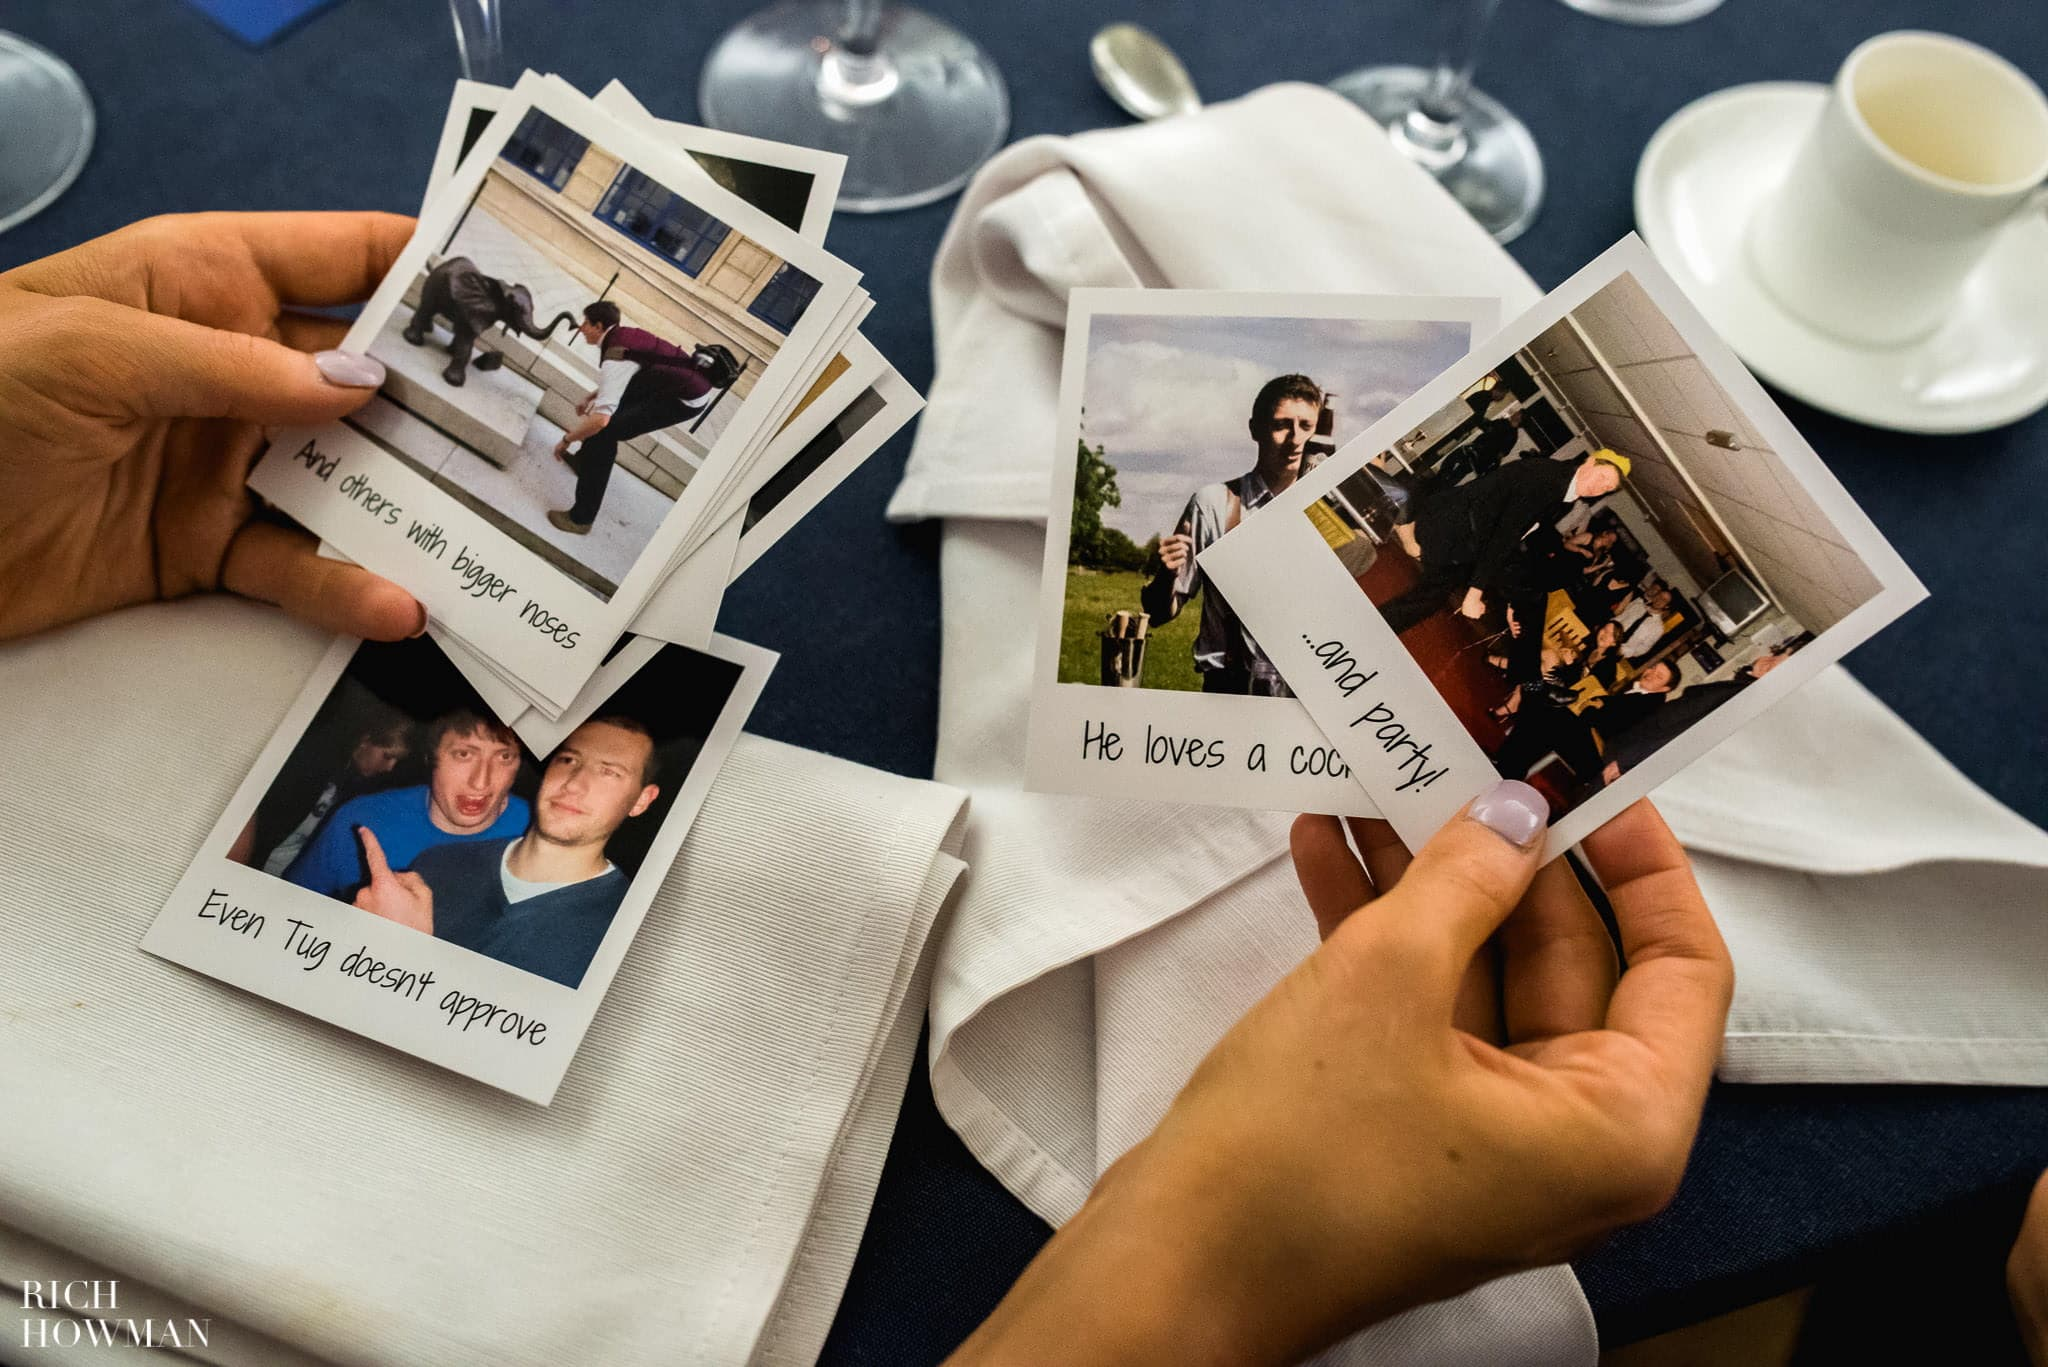 Funny photos of the groom handed out by the best man during his wedding speech.